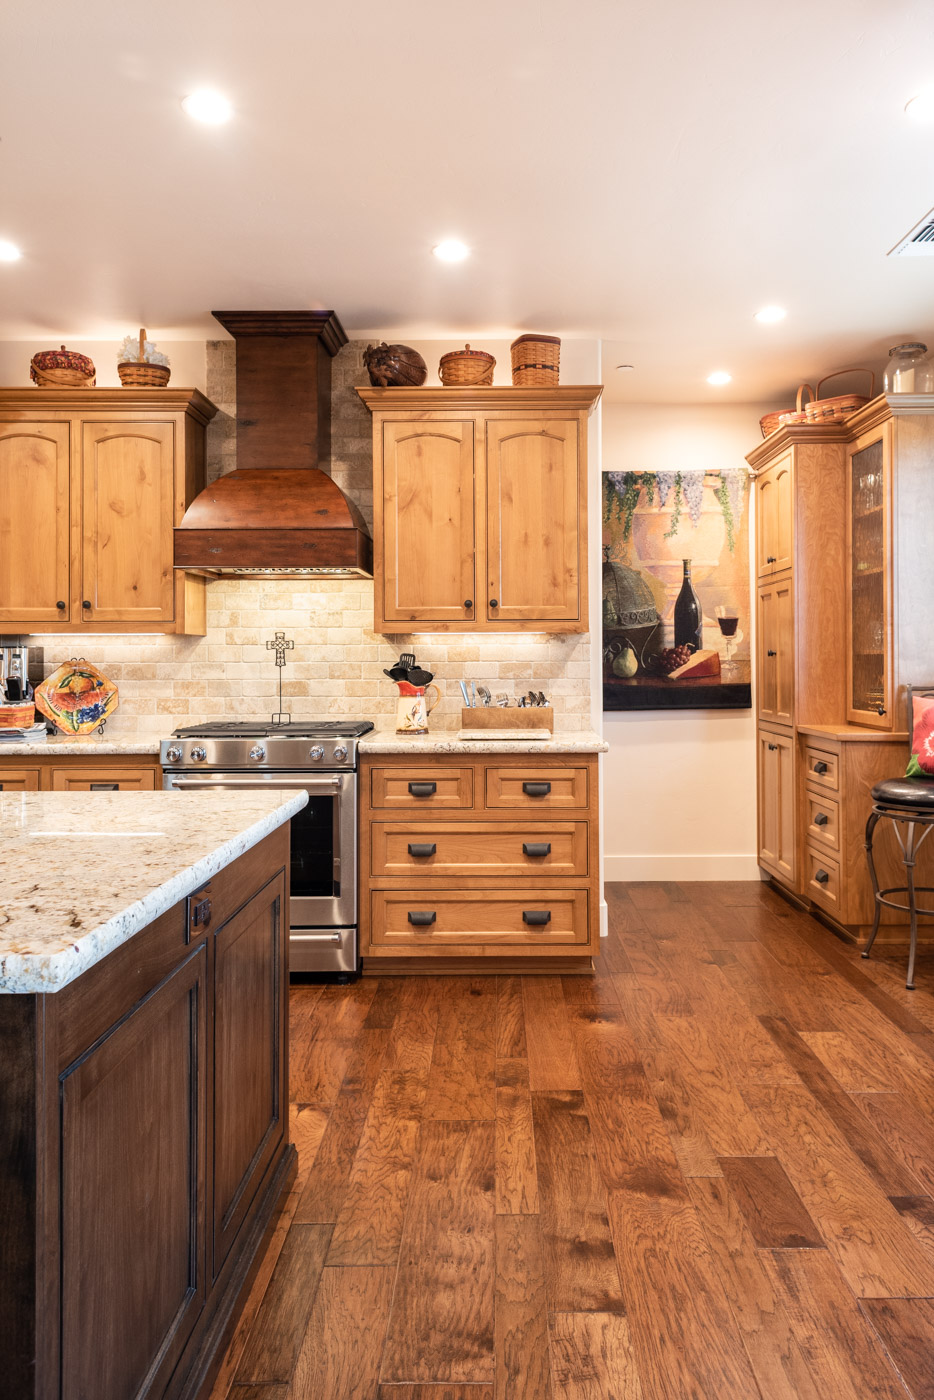 Tuscan Artisan custom stained Alder wood kitchen cabinets